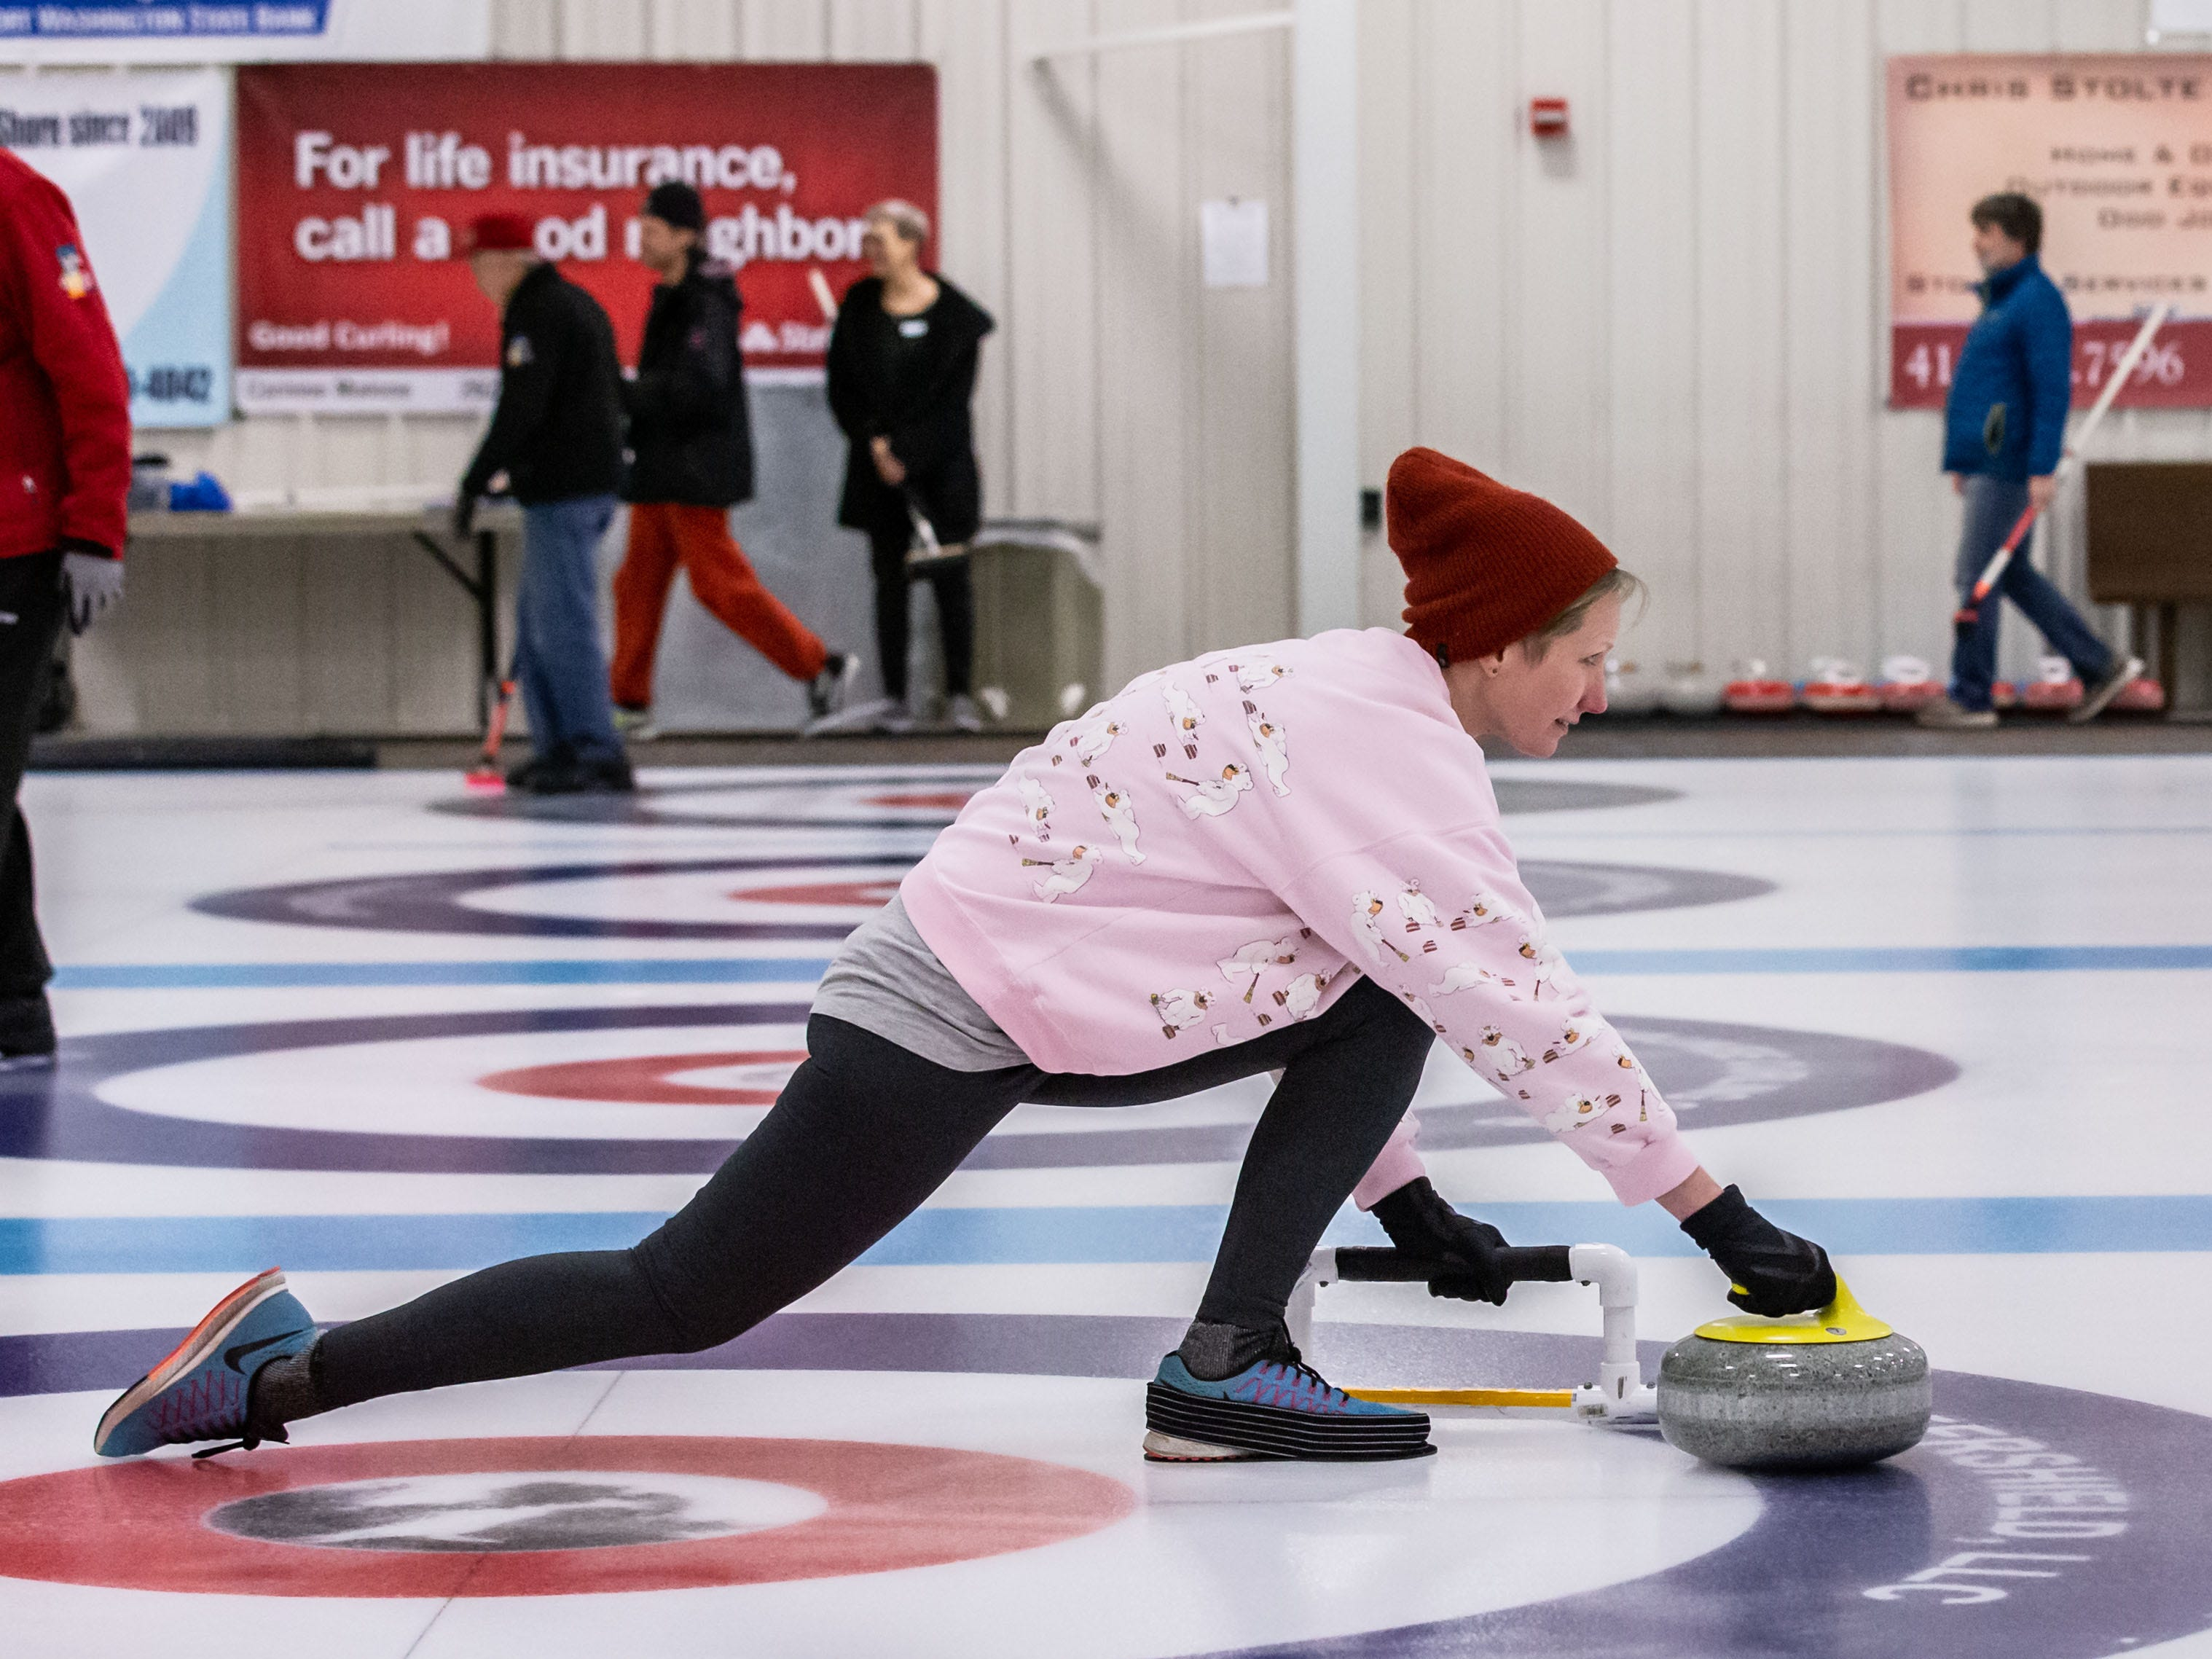 Ingrid Stromberg of San Diego practices releasing a stone during the Learn to Curl program at the Milwaukee Curling Club in Cedarburg on Saturday, Dec. 29, 2018.